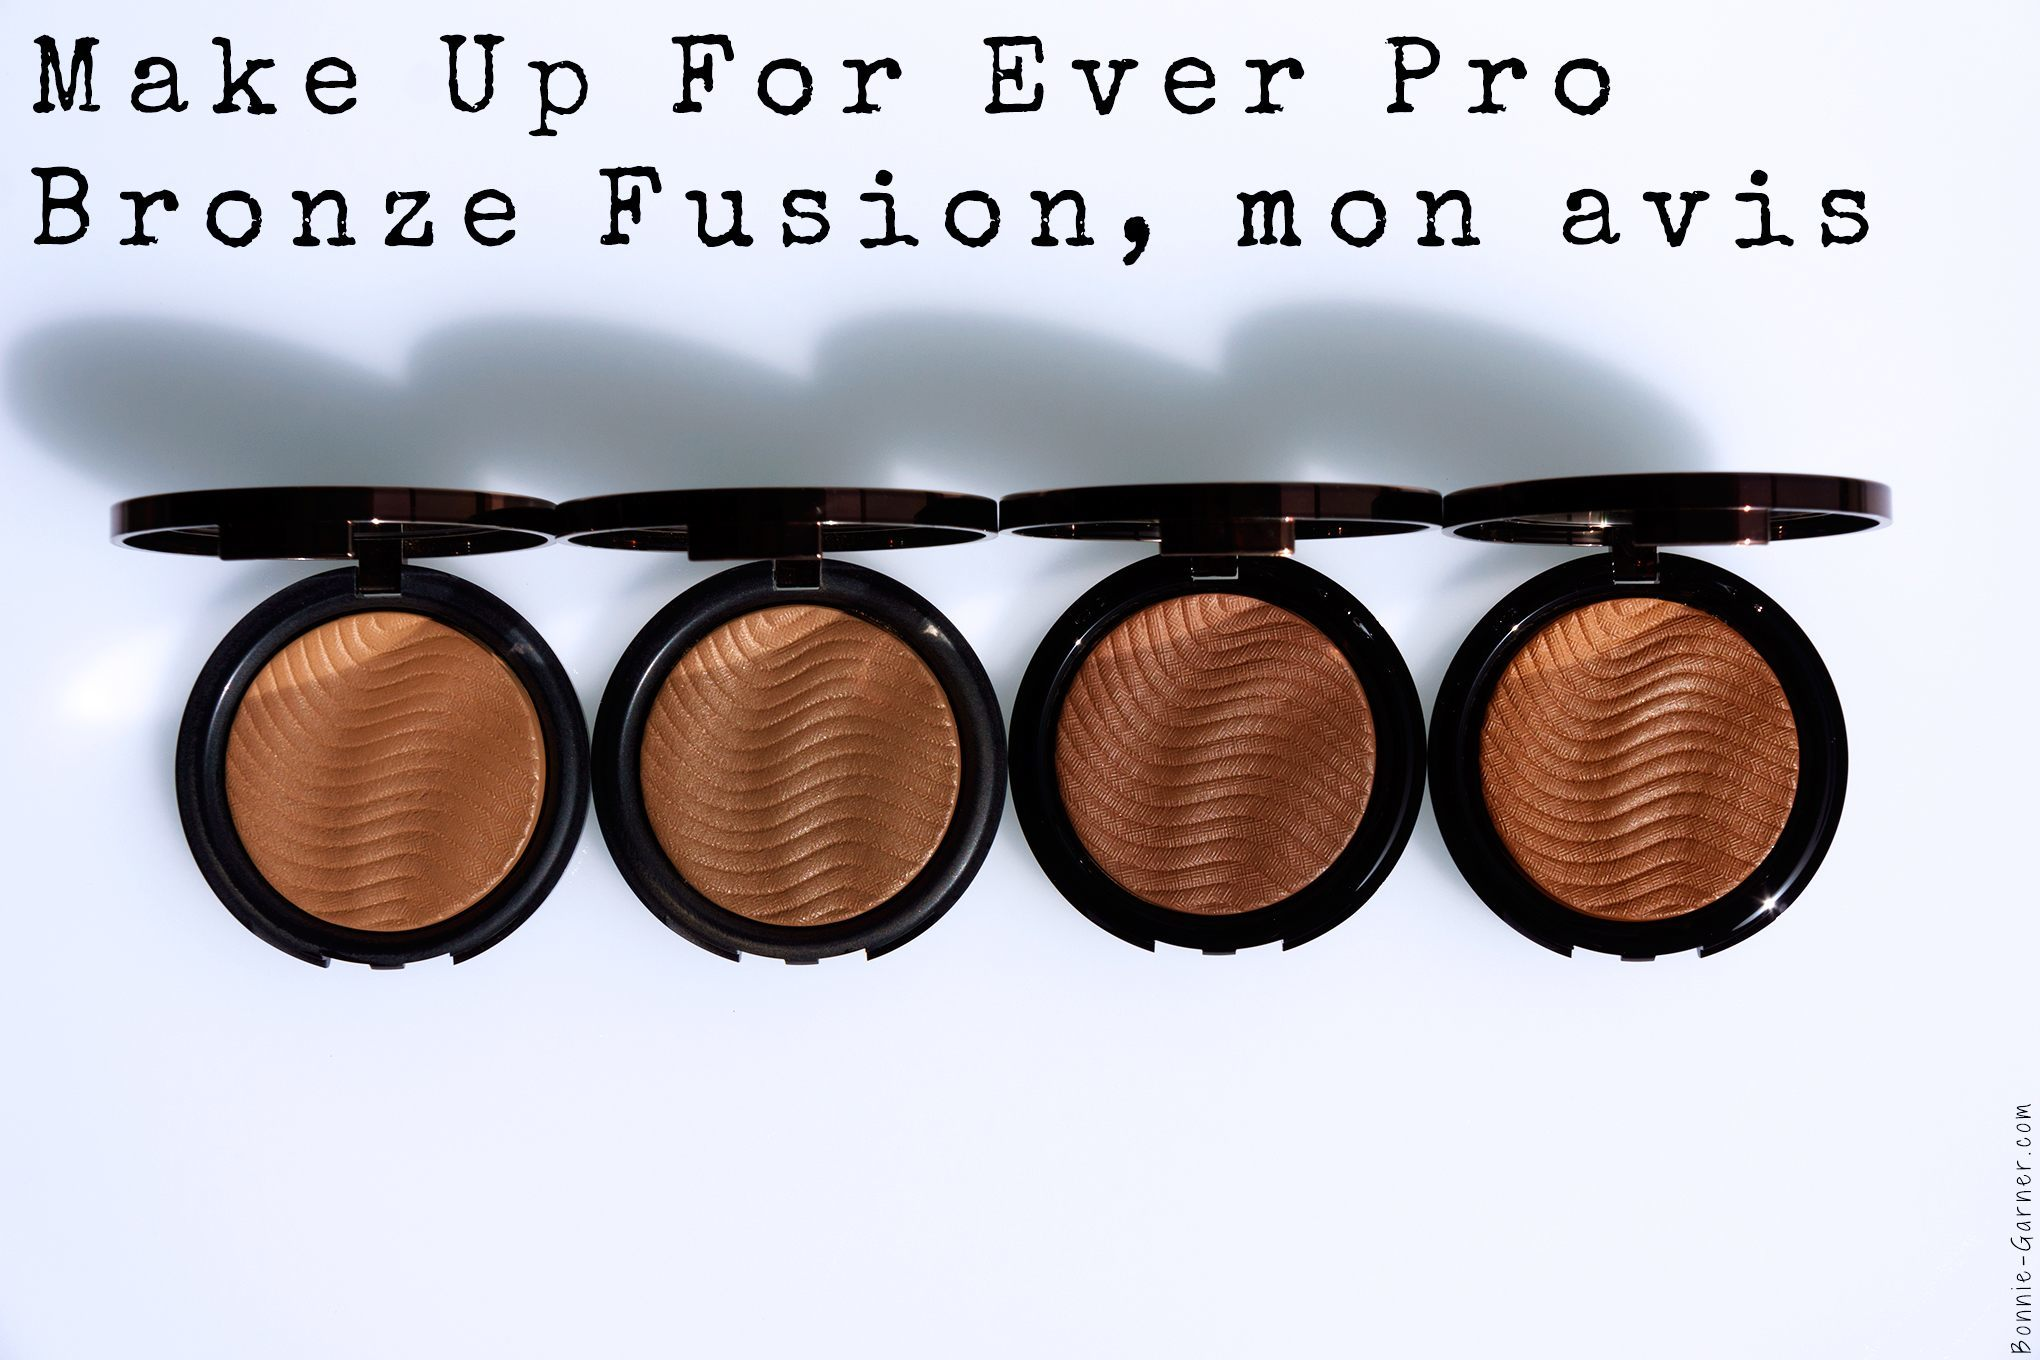 Make Up For Ever Pro Bronze Fusion, mon avis